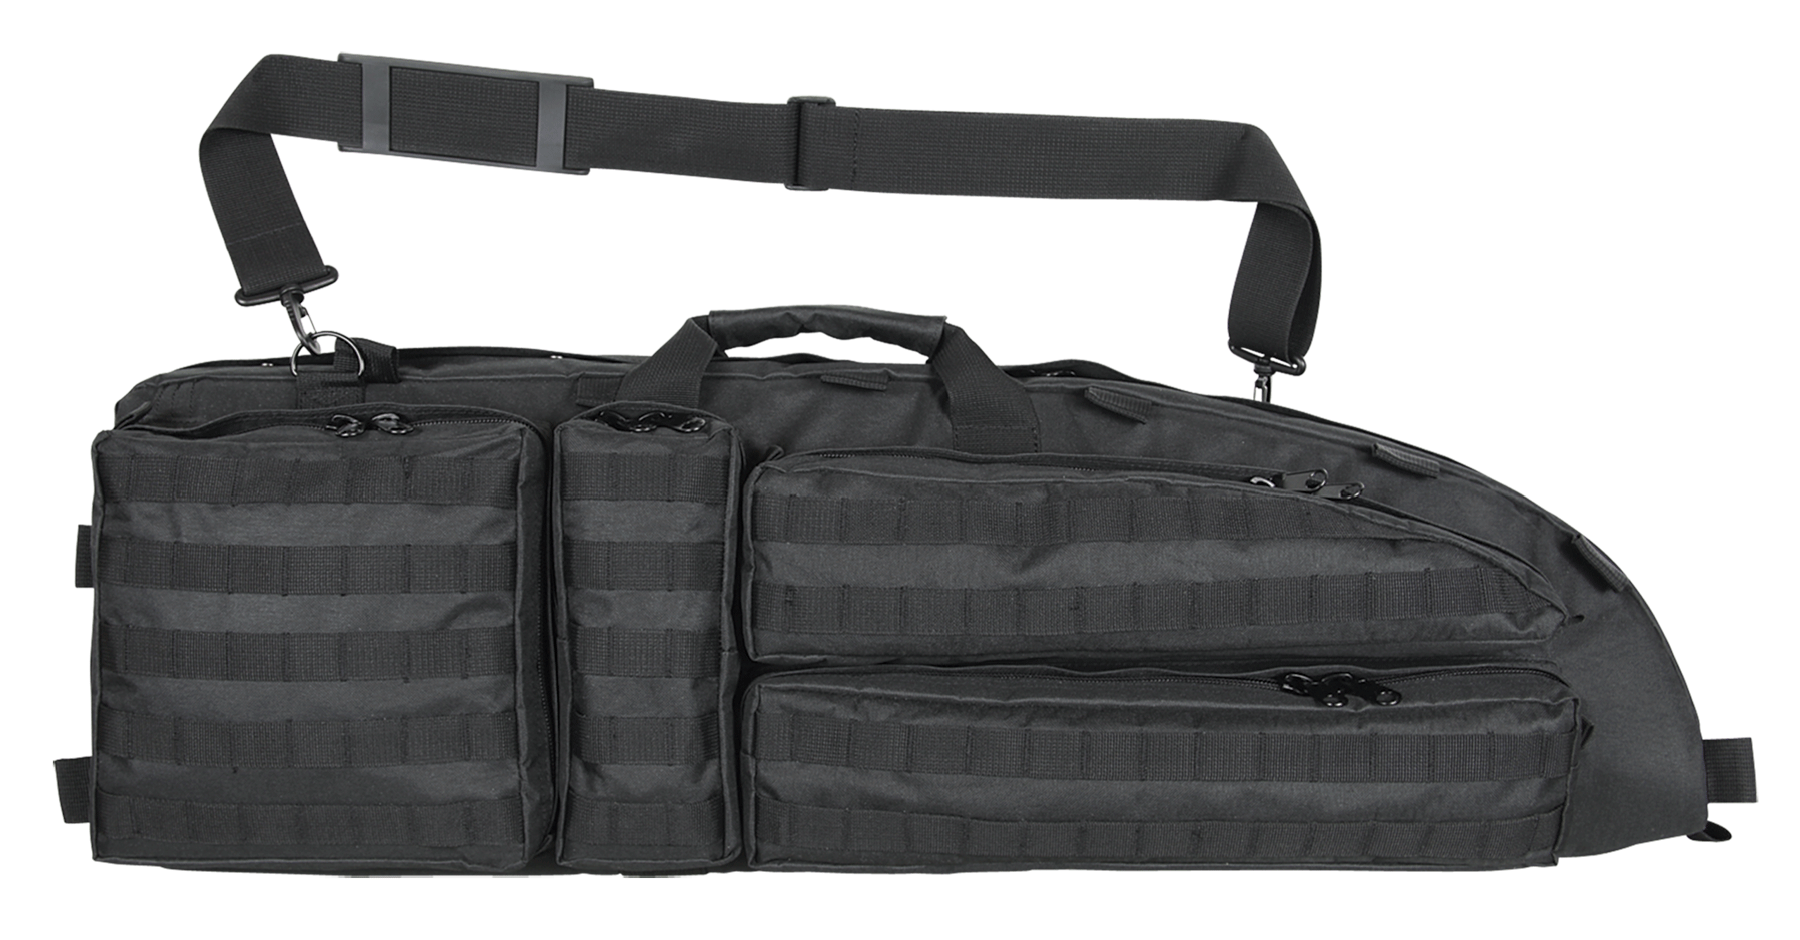 Allen 1076 Pro Series Tactical Gun Case 46